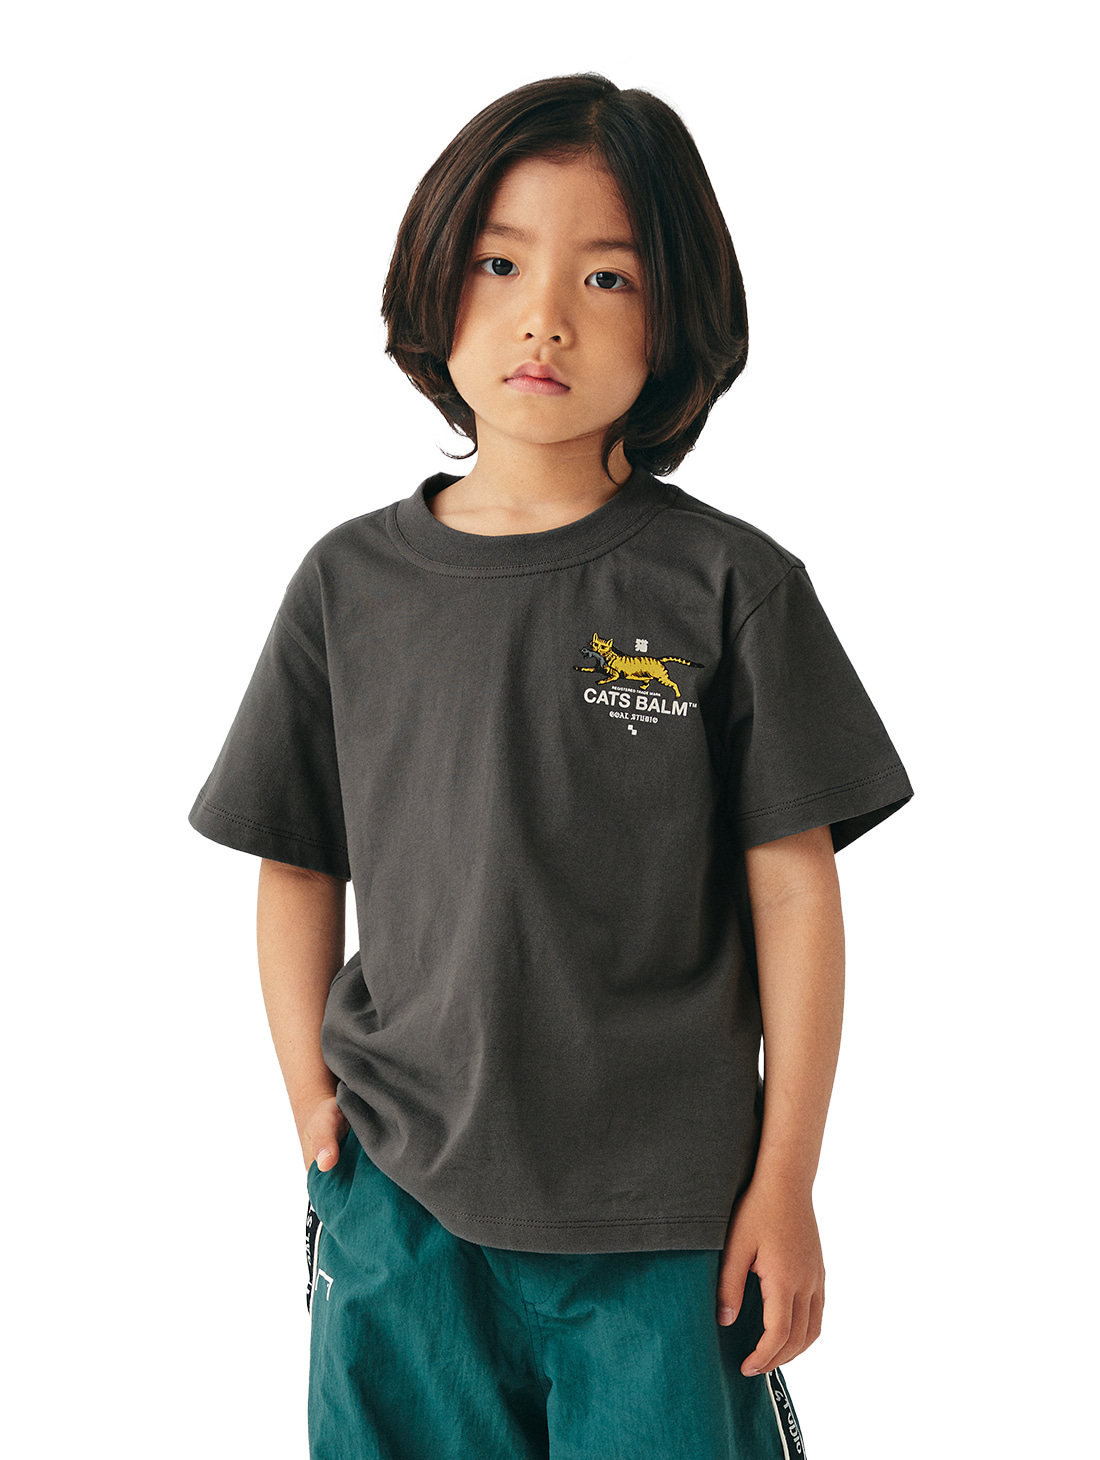 GOALSTUDIO (KIDS) MC BALM GRAPHIC TEE - DARK GREY